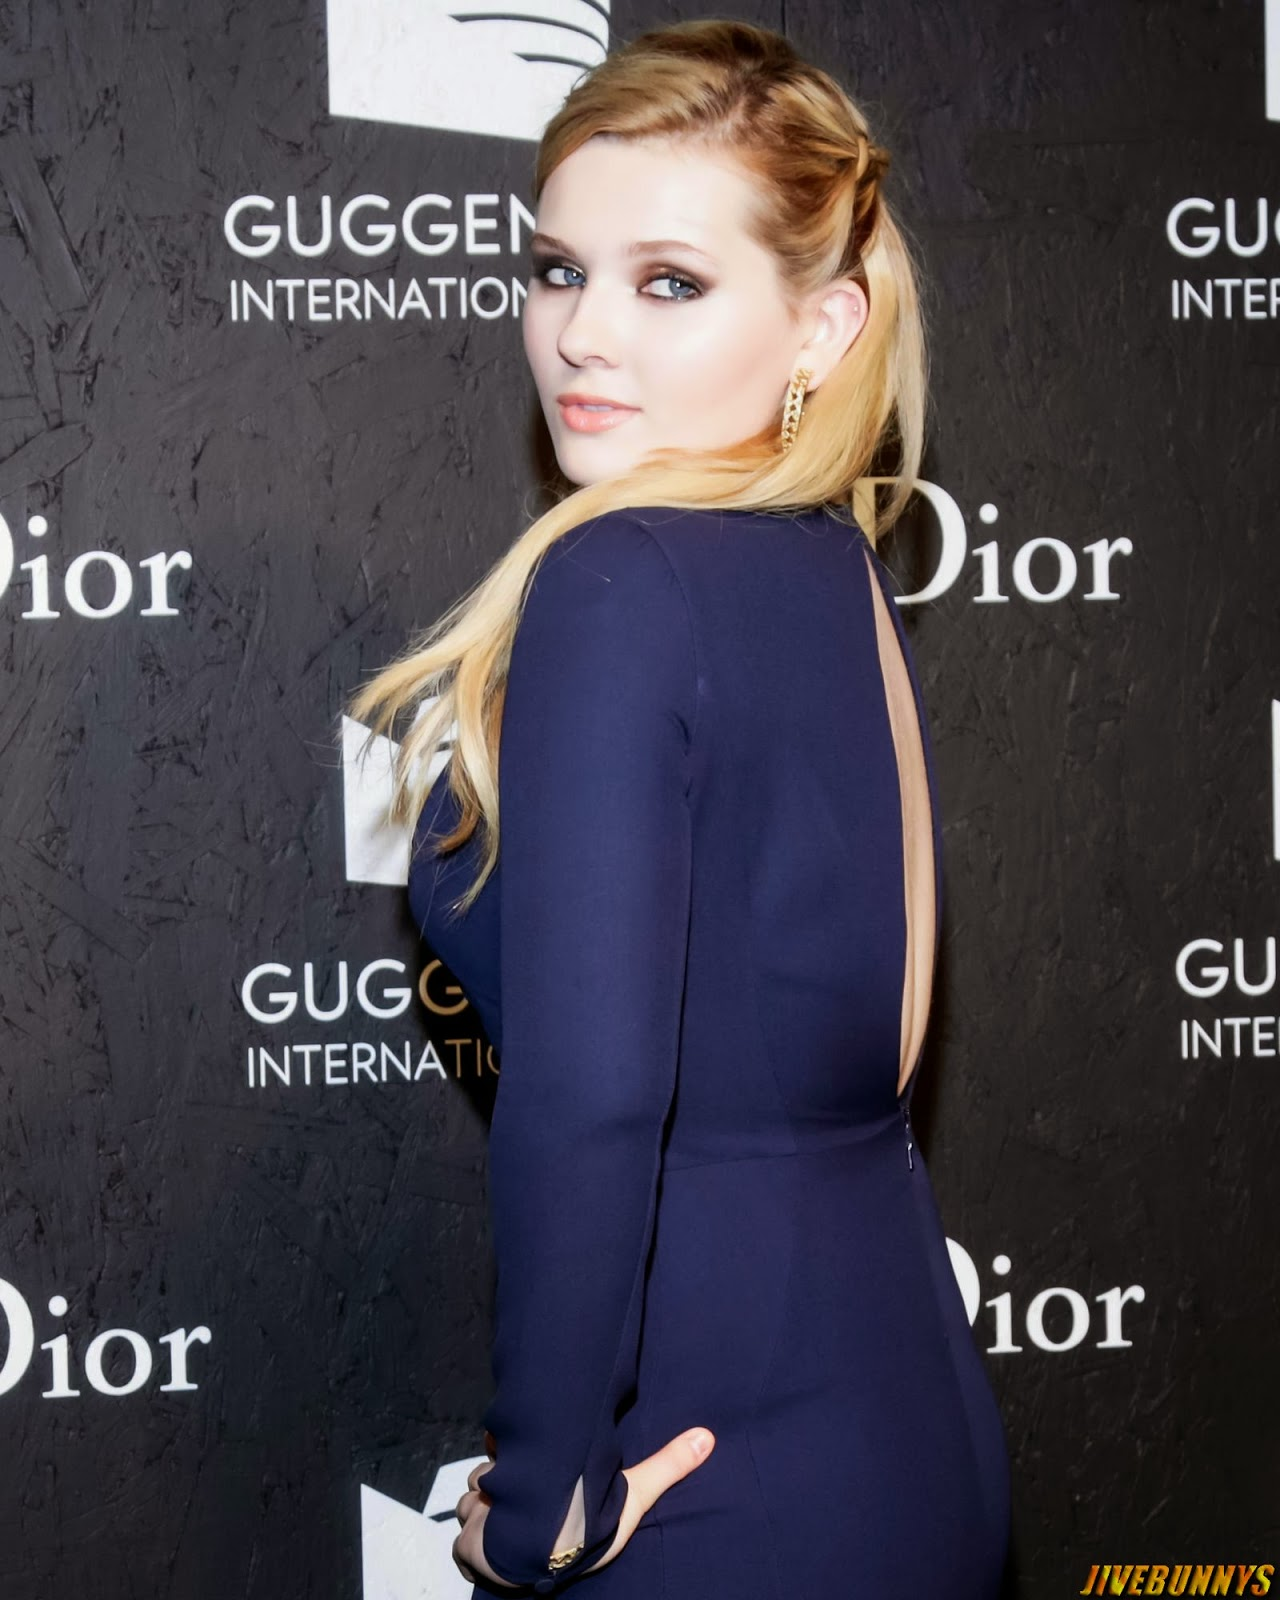 Gorgeous Abigail breslin at award ceremony blue gown